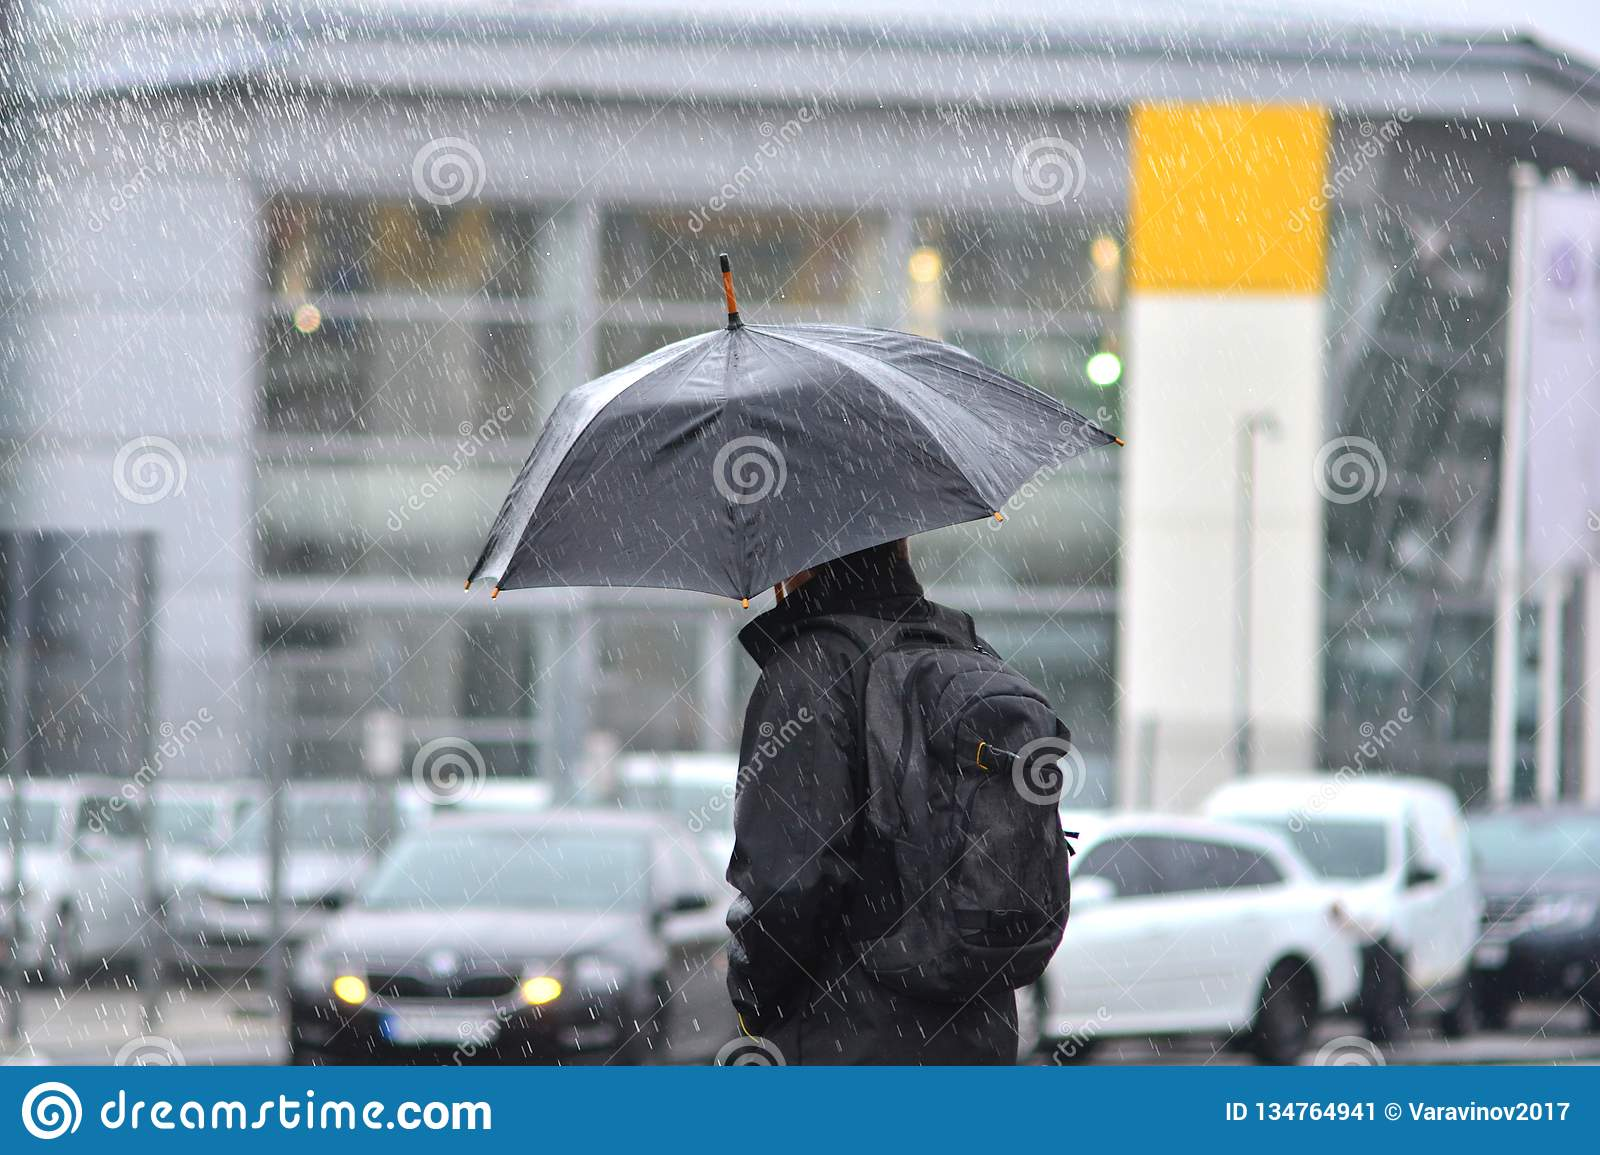 A man with an umbrella in the rain crossing the road.